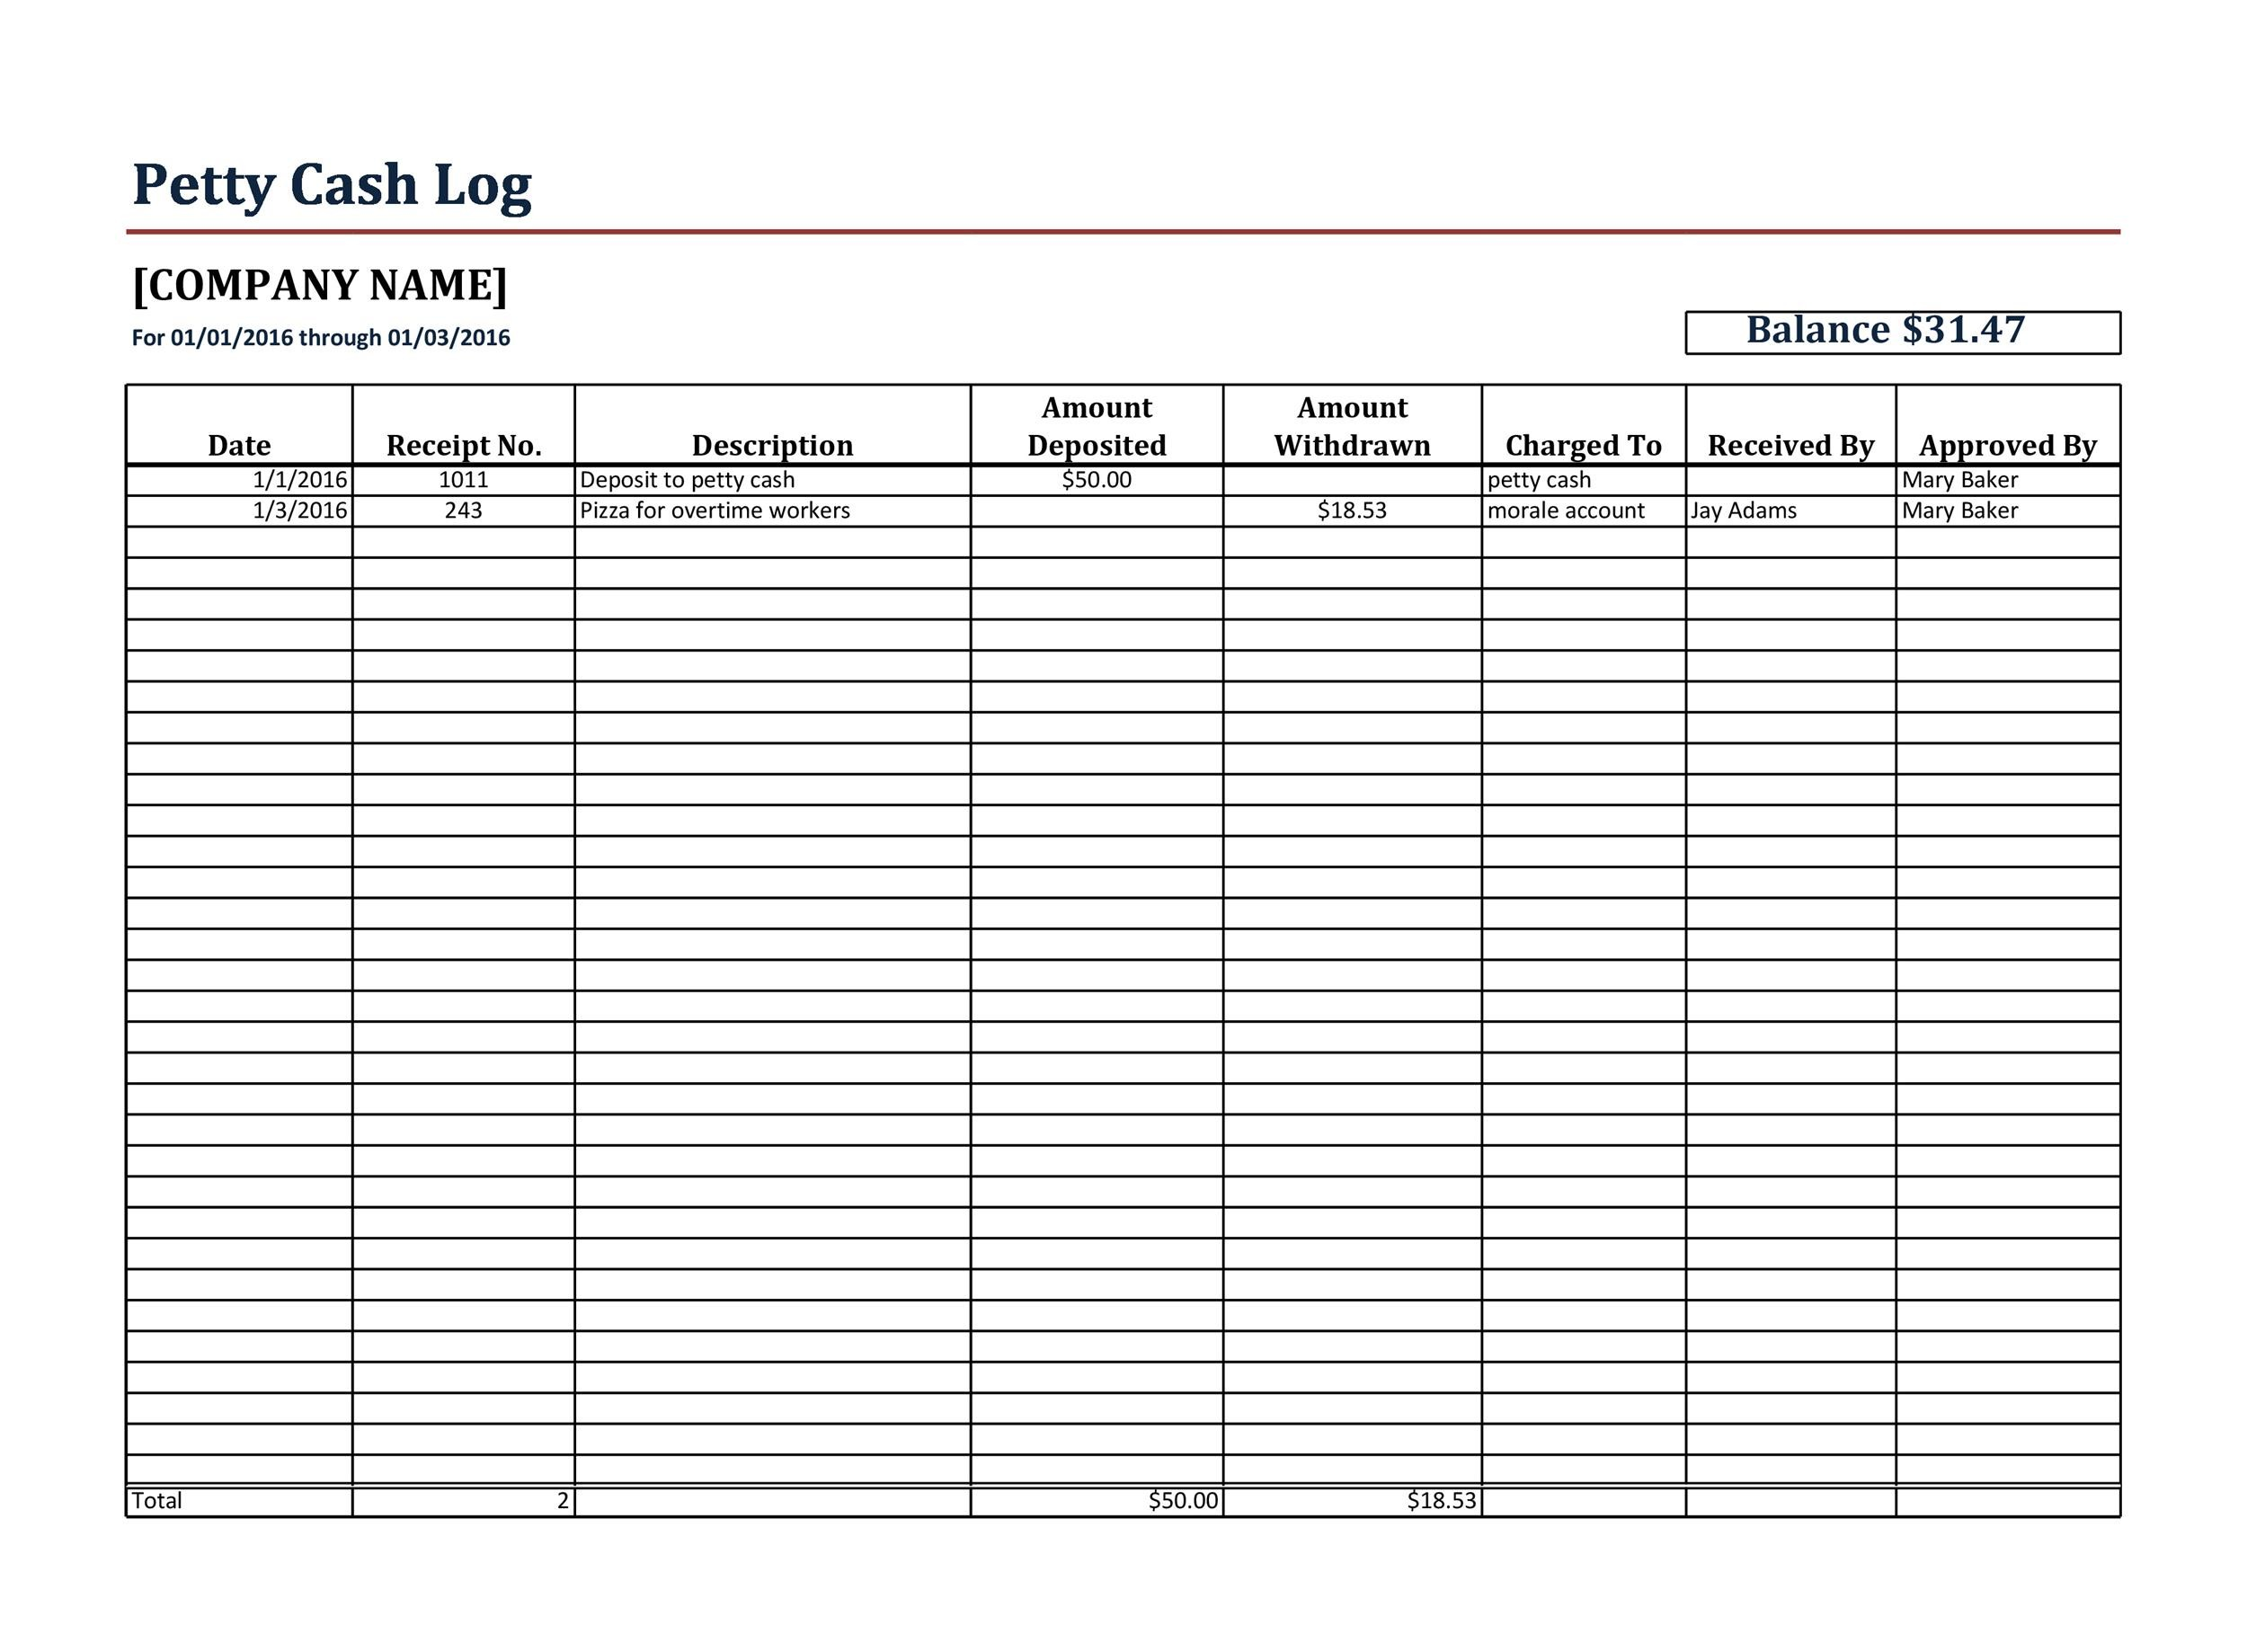 40 Petty Cash Log Templates & Forms Excel, PDF, Word ᐅ ...